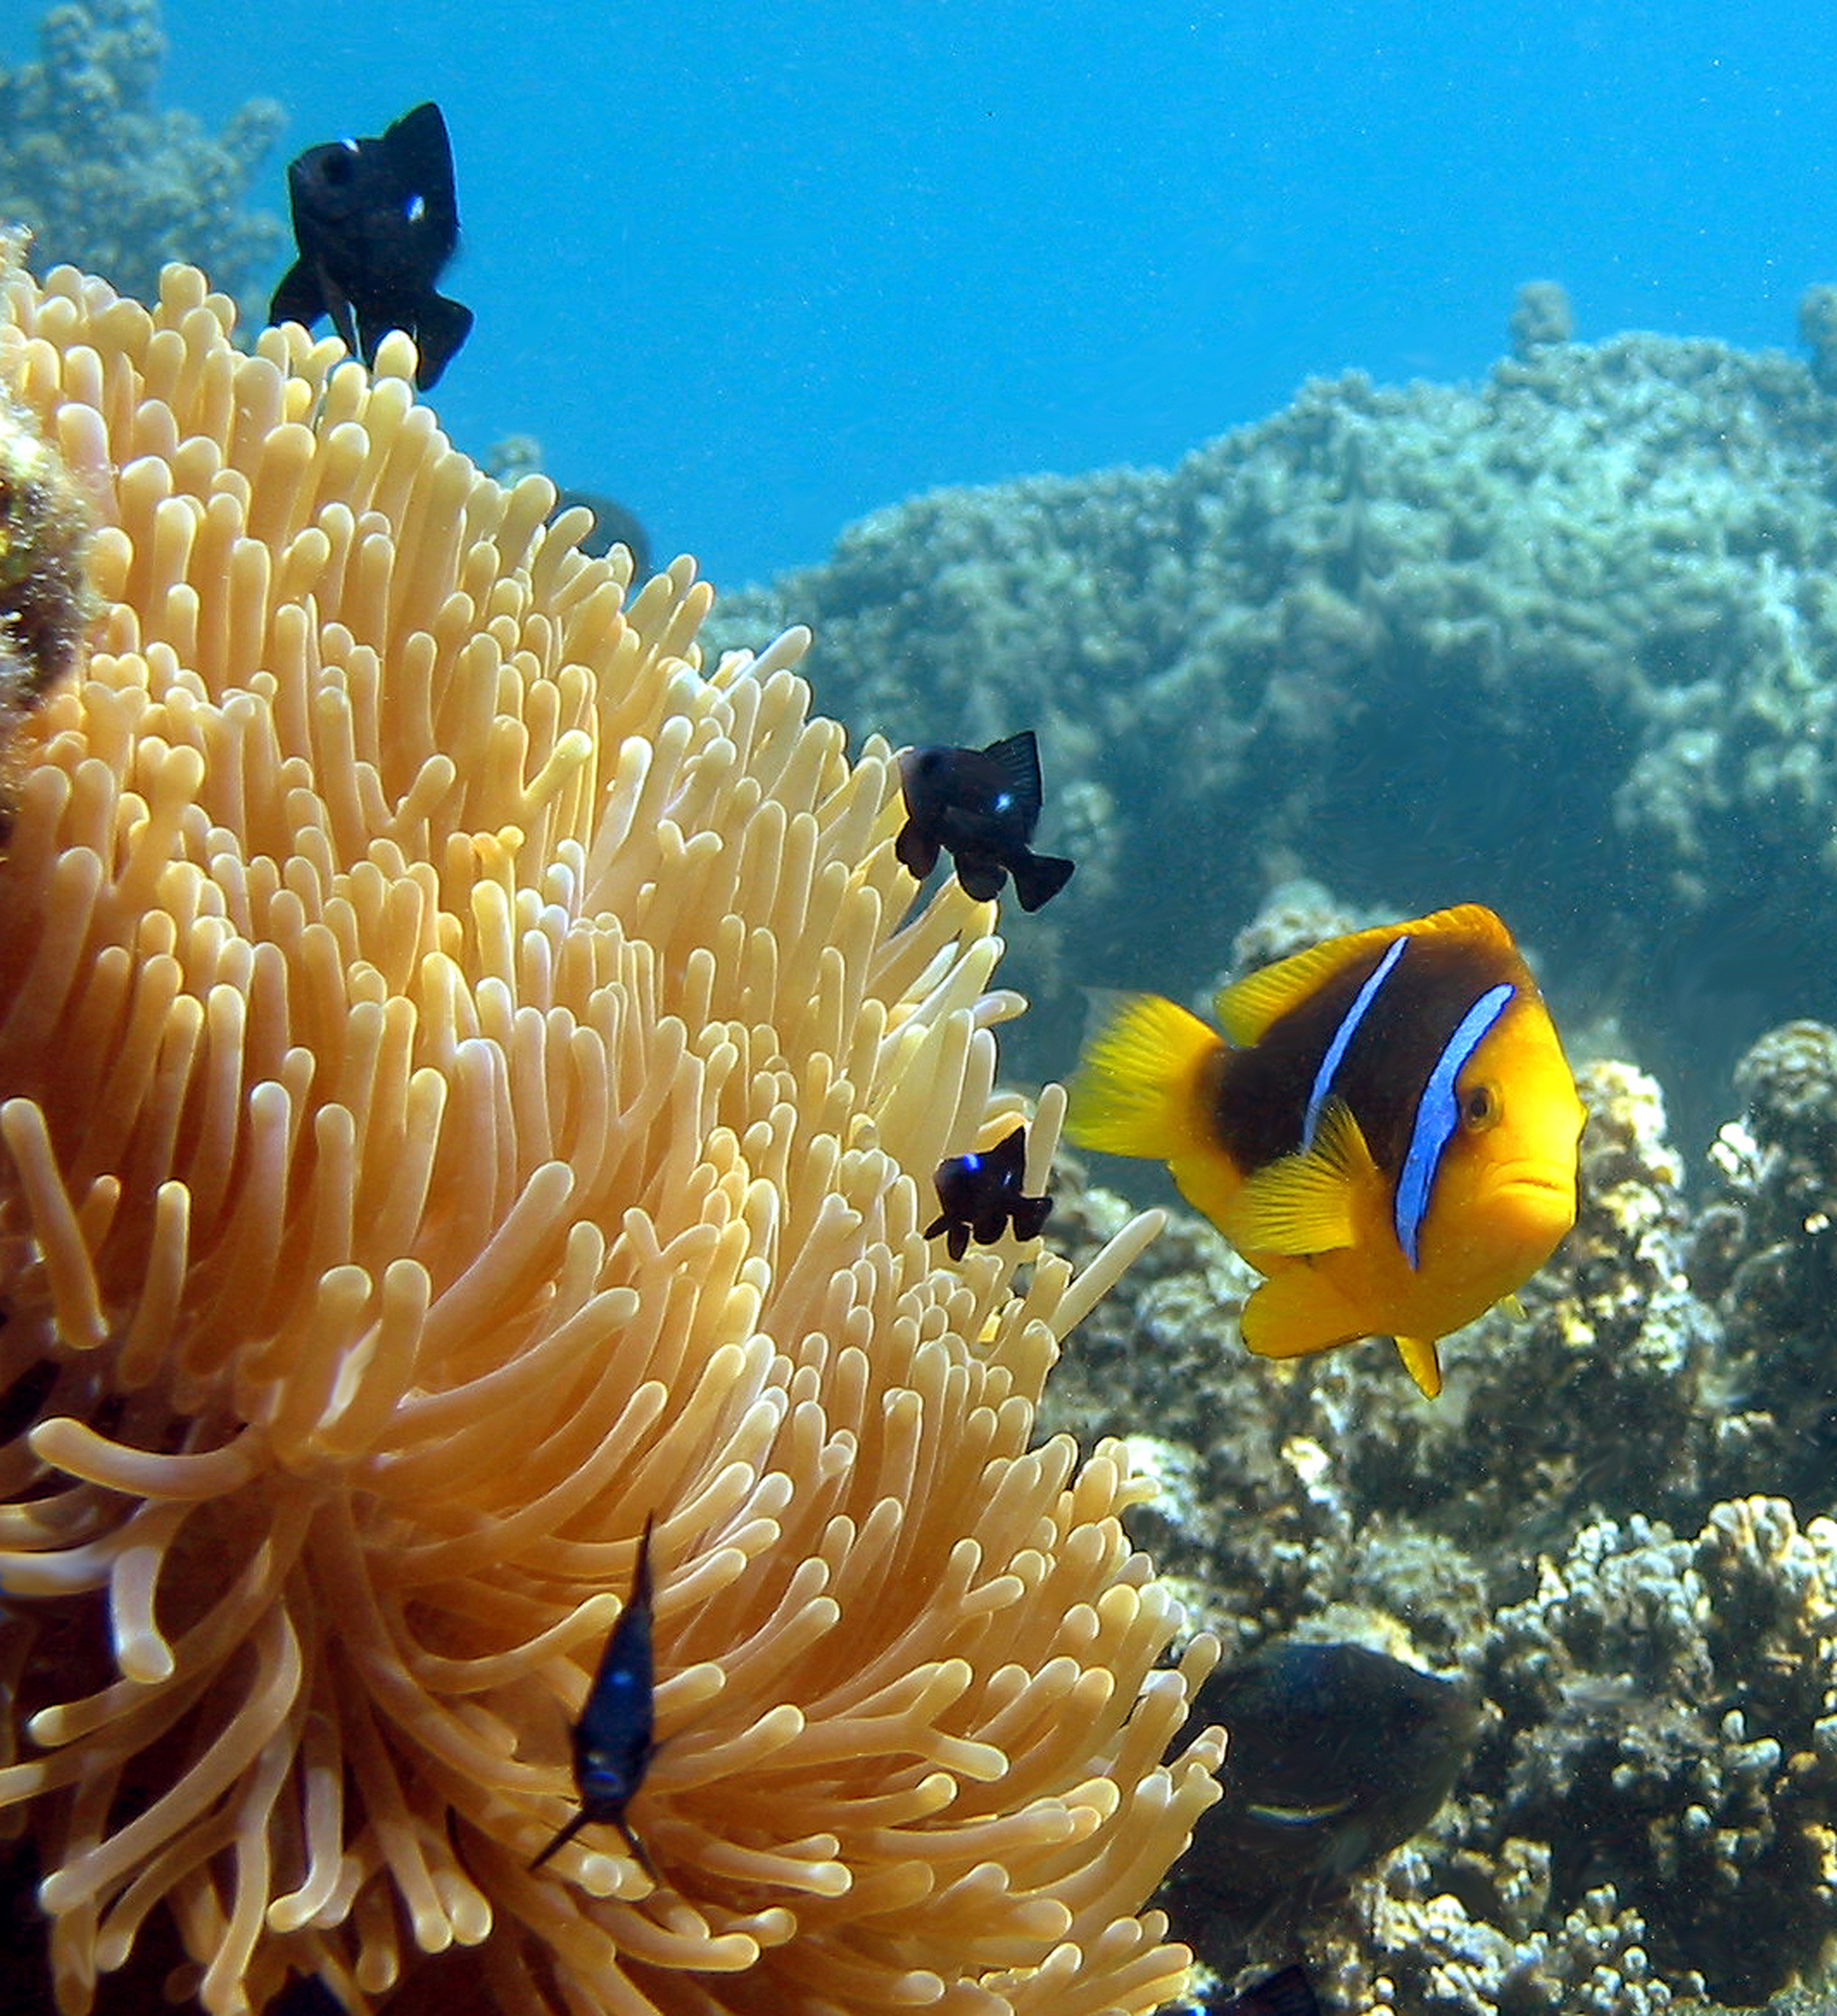 anemone fish with large clup of anemone and corals in background